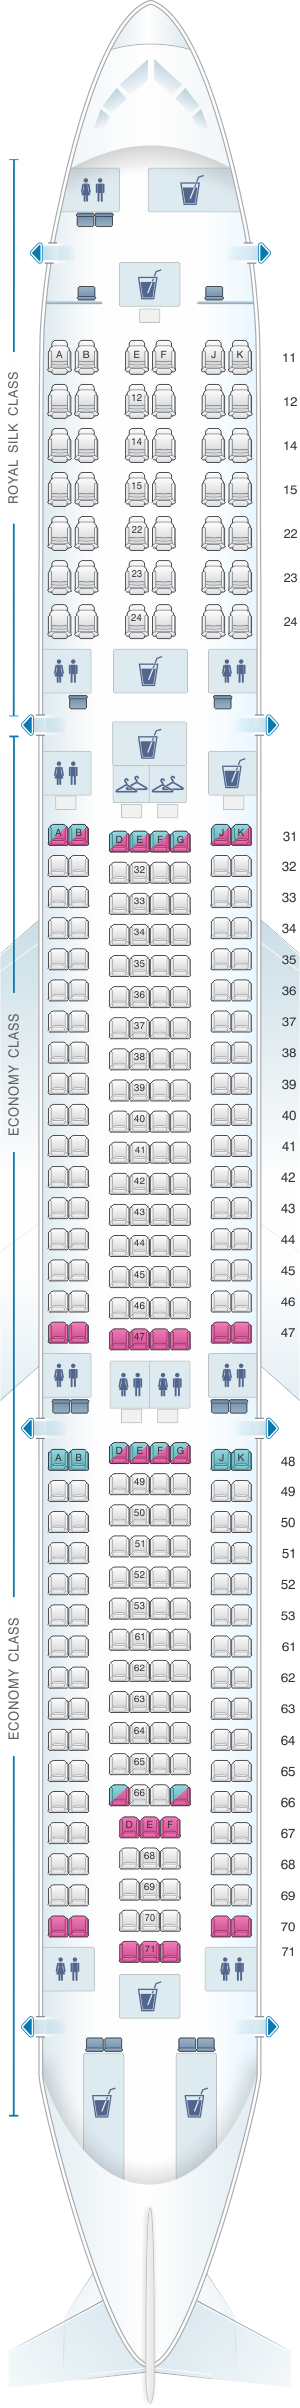 Seat map for Thai Airways International Airbus A330 300 (333)